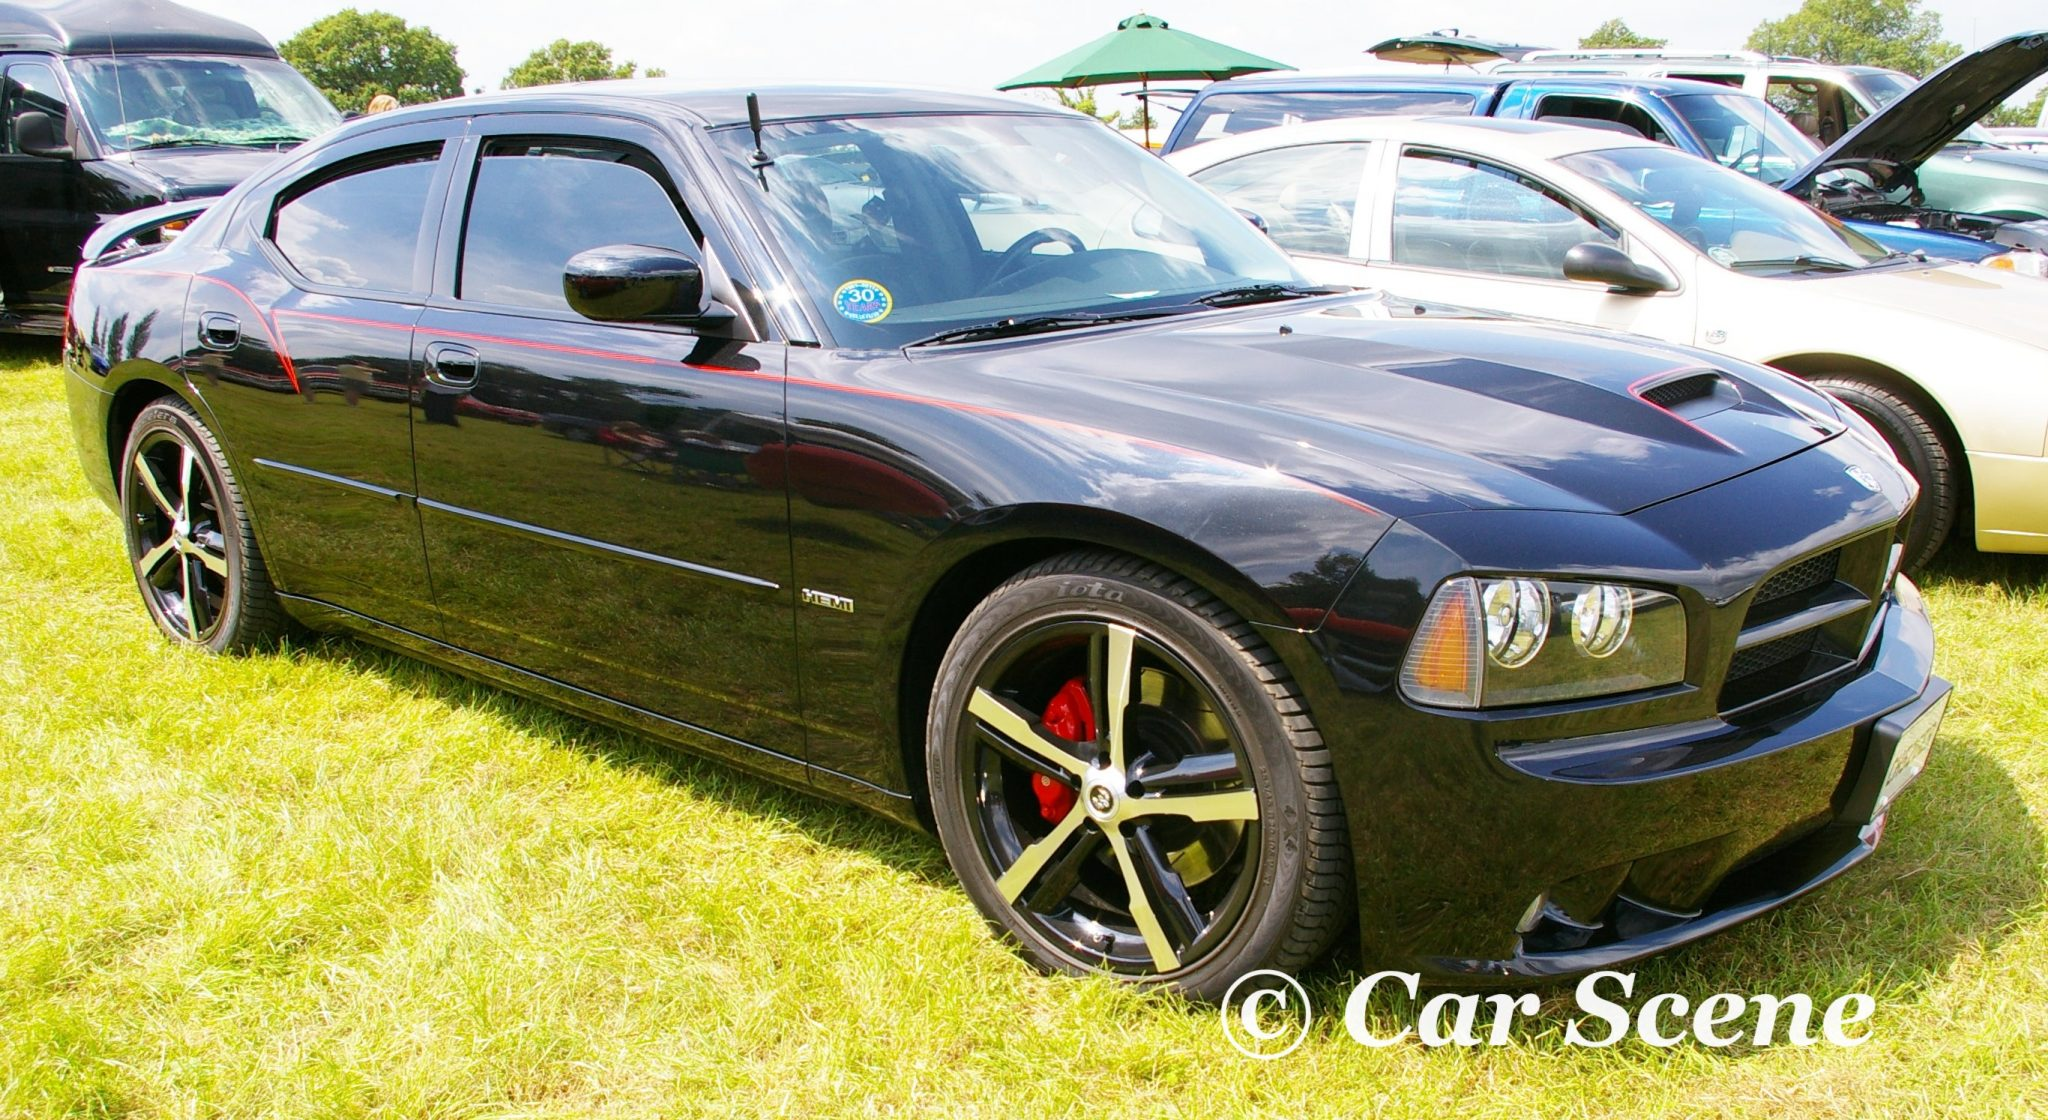 2007 Dodge Charger SRT8 front side view